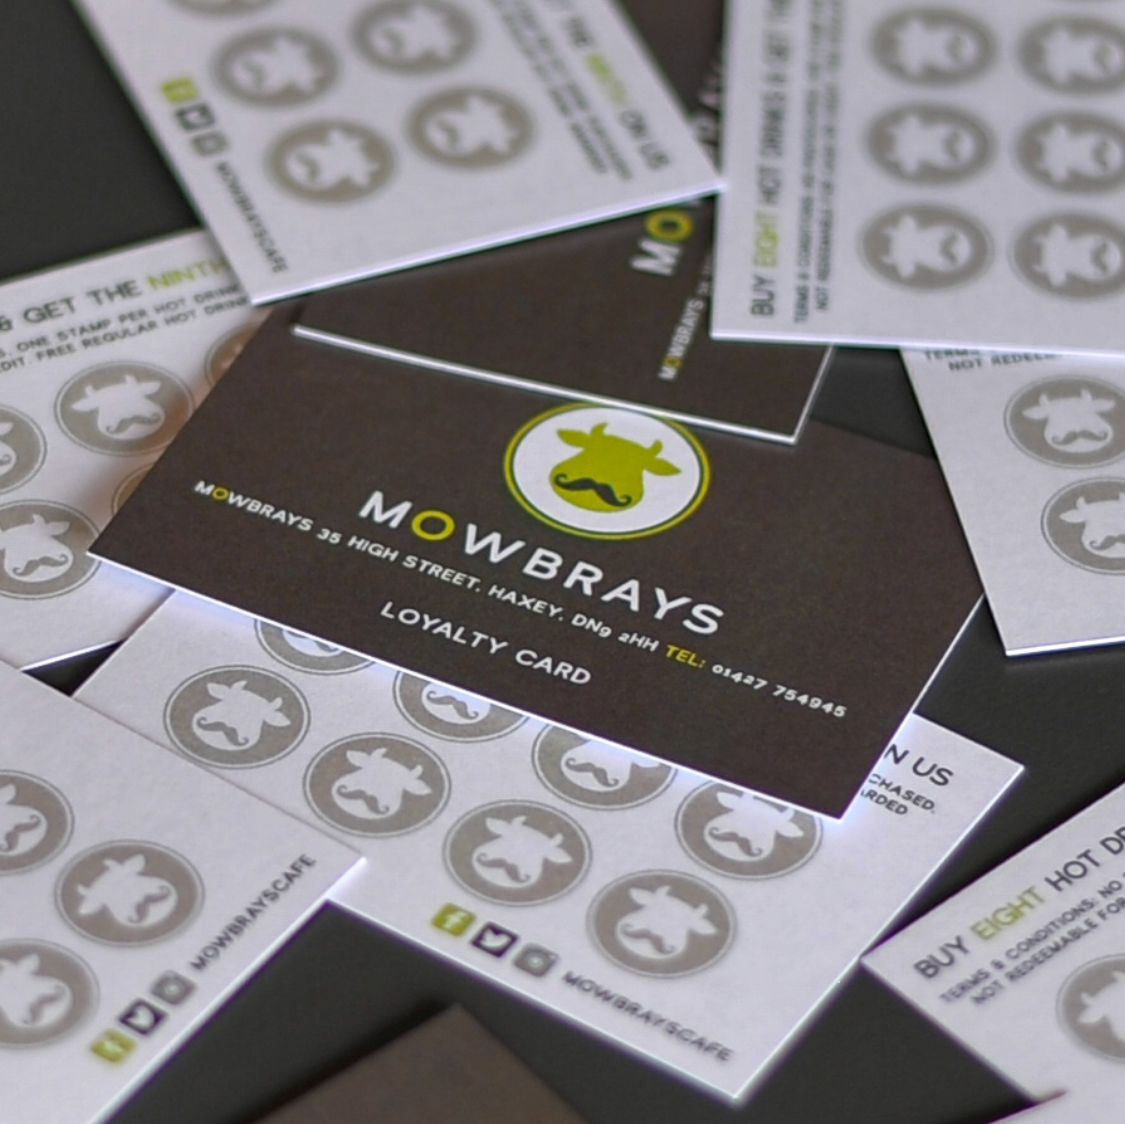 Mowbrays loyalty card - Buy eight hot drinks and get the ninth on us. Pick up your card in the cafe.